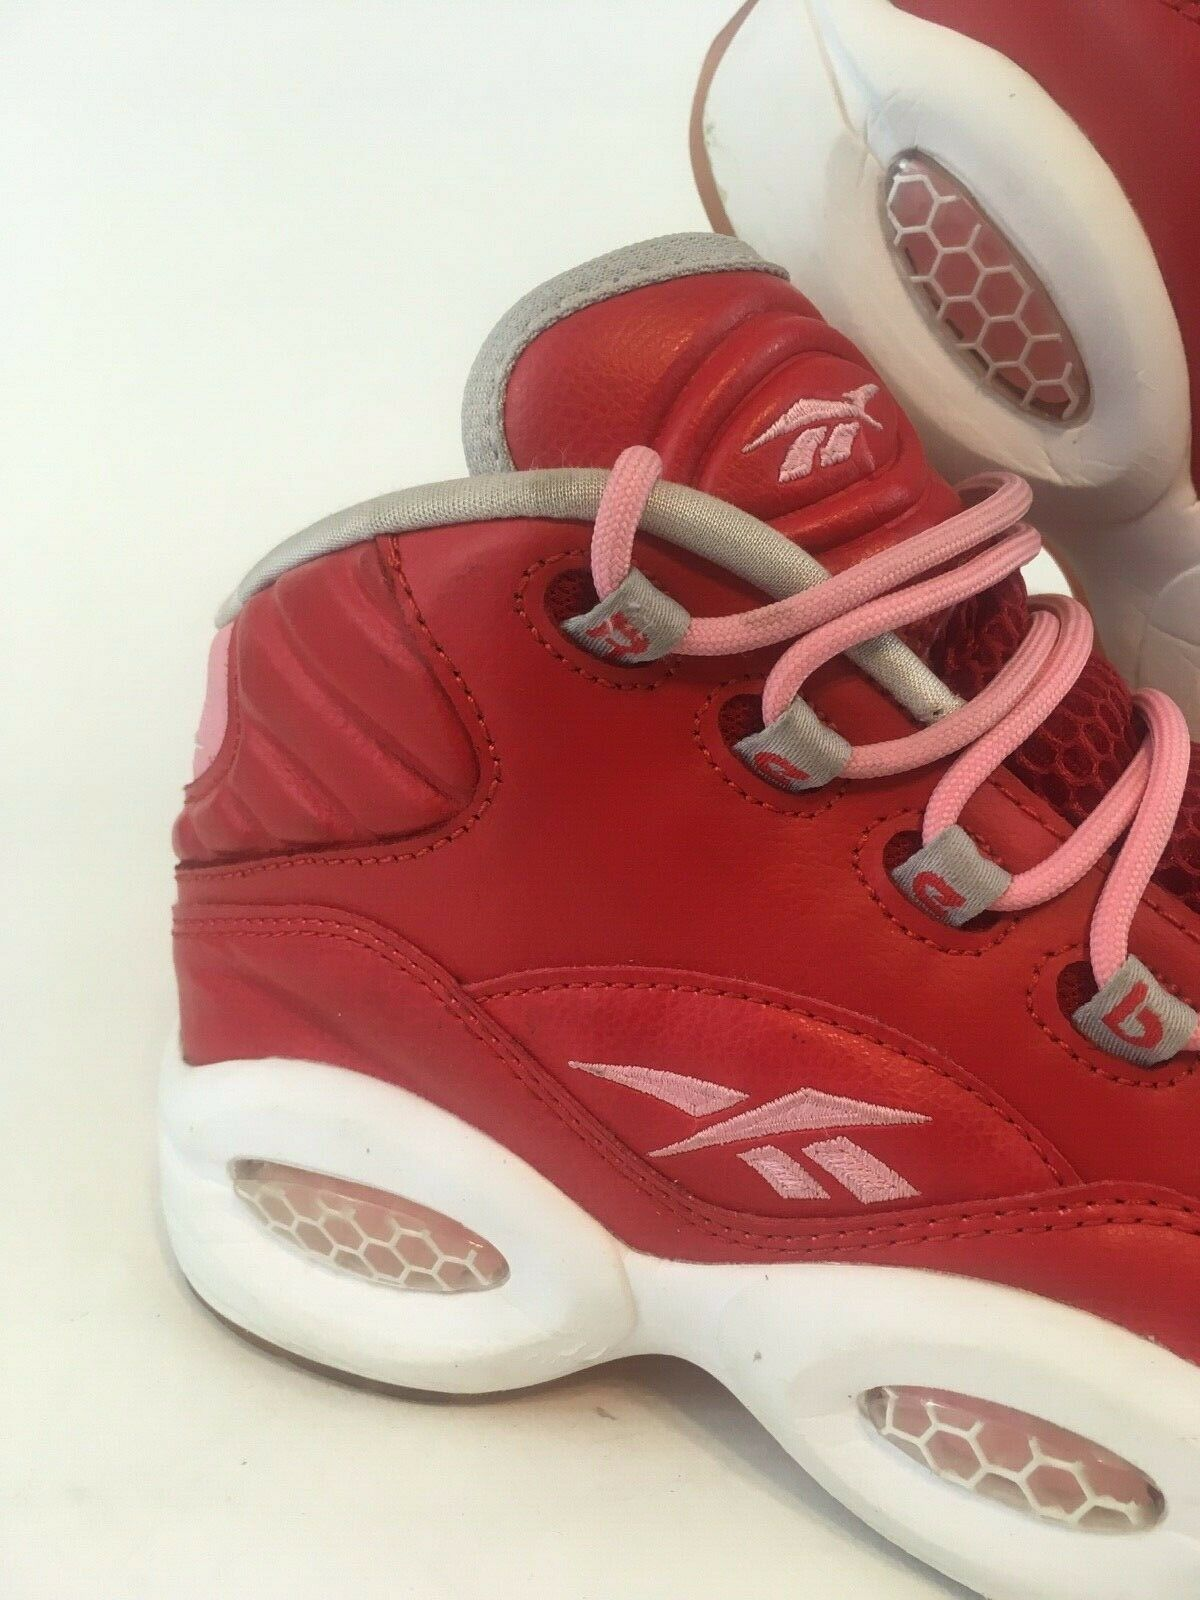 Reebok Reebok Reebok Allen Iverson The Question Pink Red Mid Retro Sparkle Youth 5.5 Womens 7 e5f80b